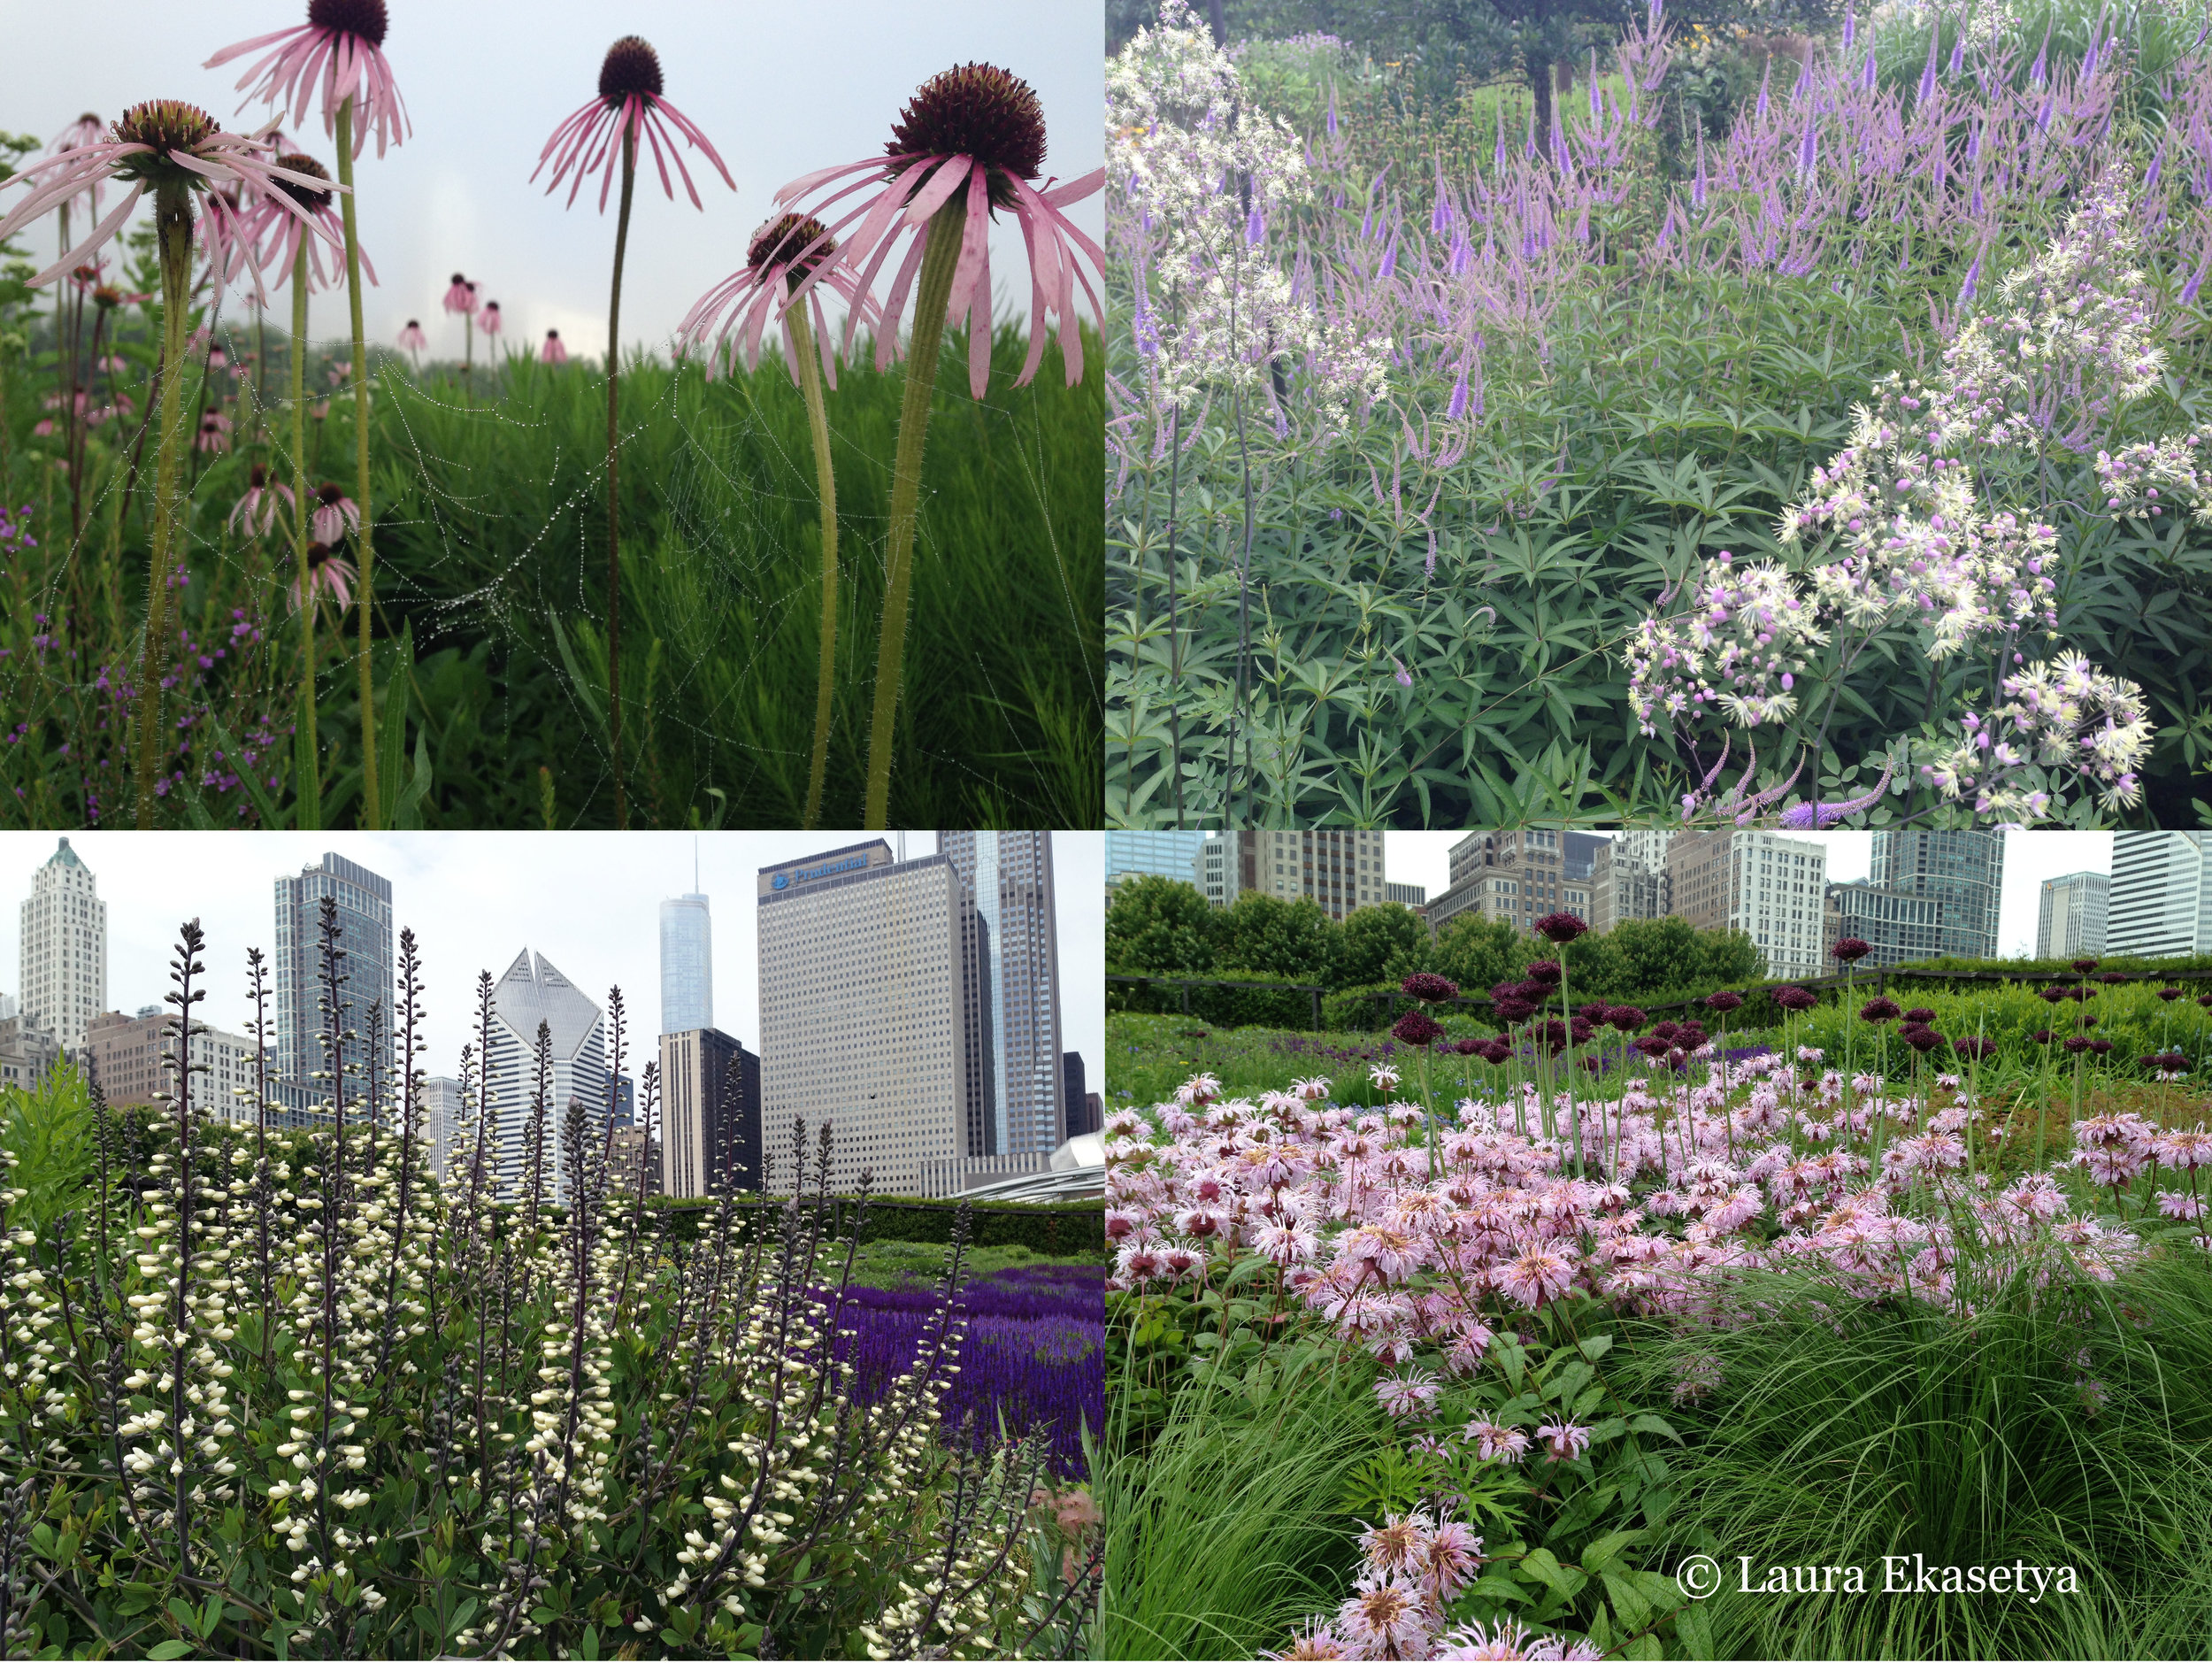 Exquisite plants and combinations can be admired throughout the Lurie Garden merely a stone's throw from downtown Chicago: Echinacea pallida in morning fog; Thalictrum 'Elin' with Veronicastrum virginicum 'Fascination'; Allium atropurpureum and Monarda bradburiana;  Baptisia 'Purple Smoke' with the salvia river in the background.